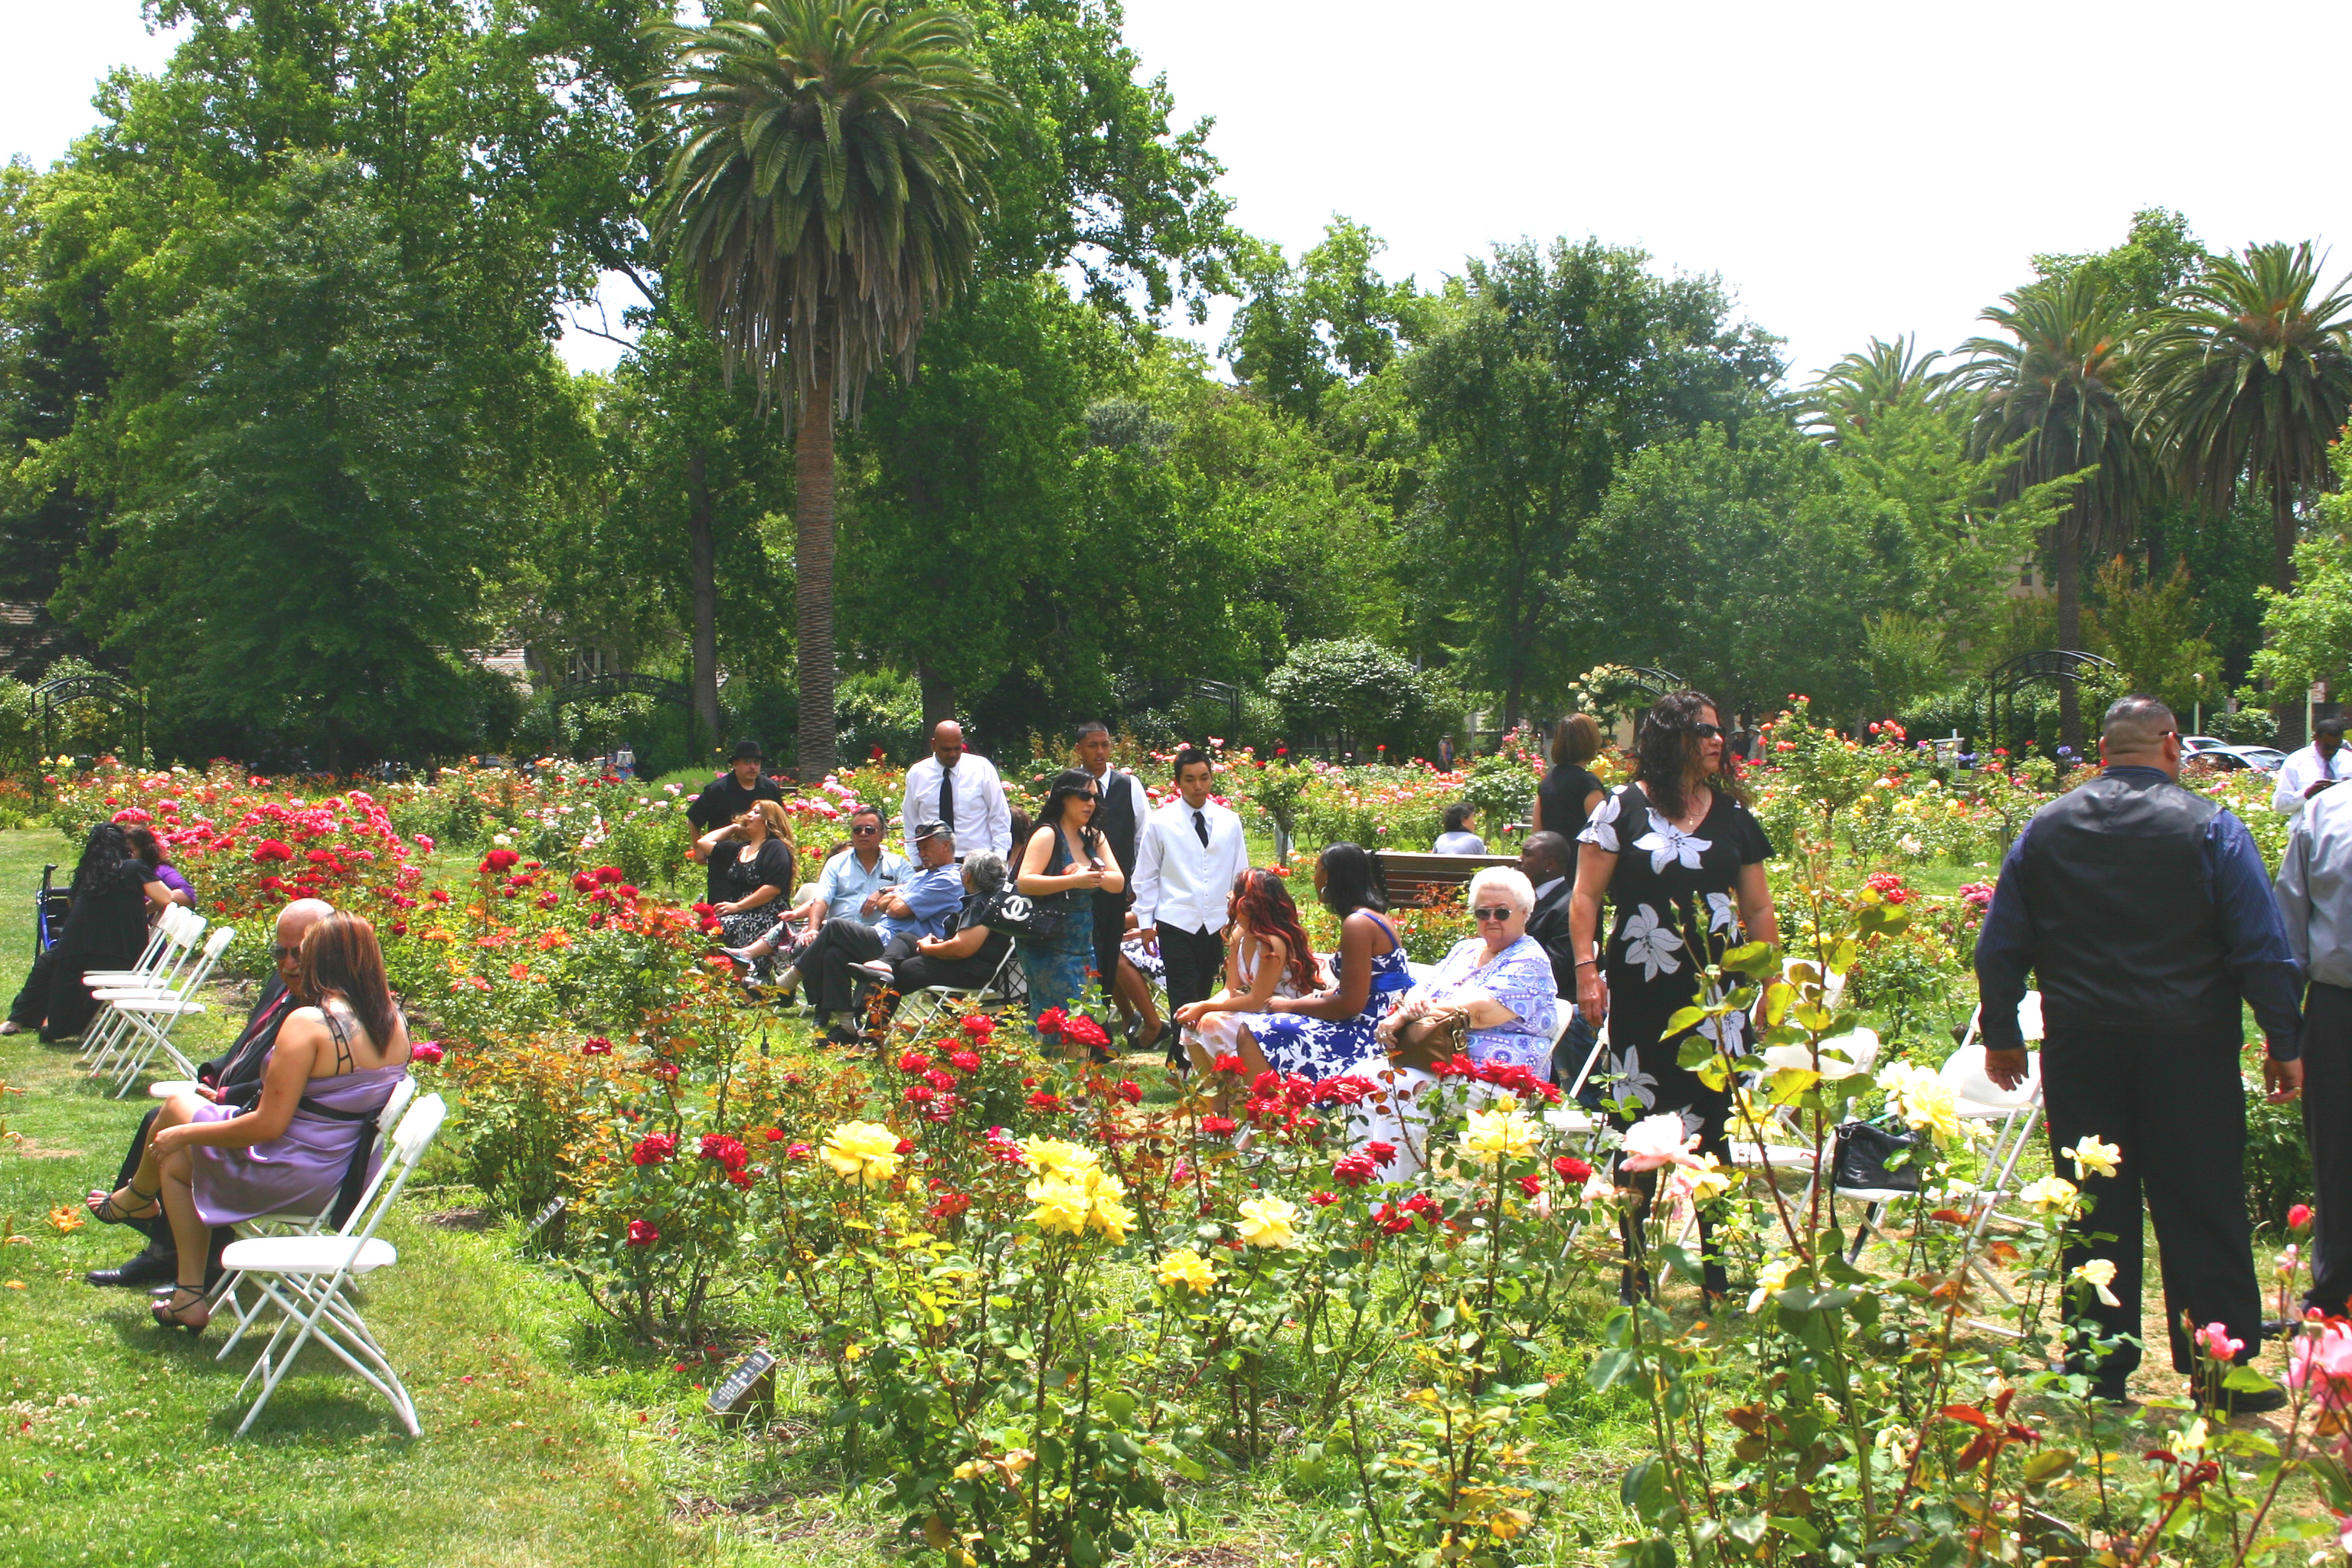 East Sacramentou0027s McKinley Park Rose Garden Draws Many Daily Visitors, As  Well As Visitors For